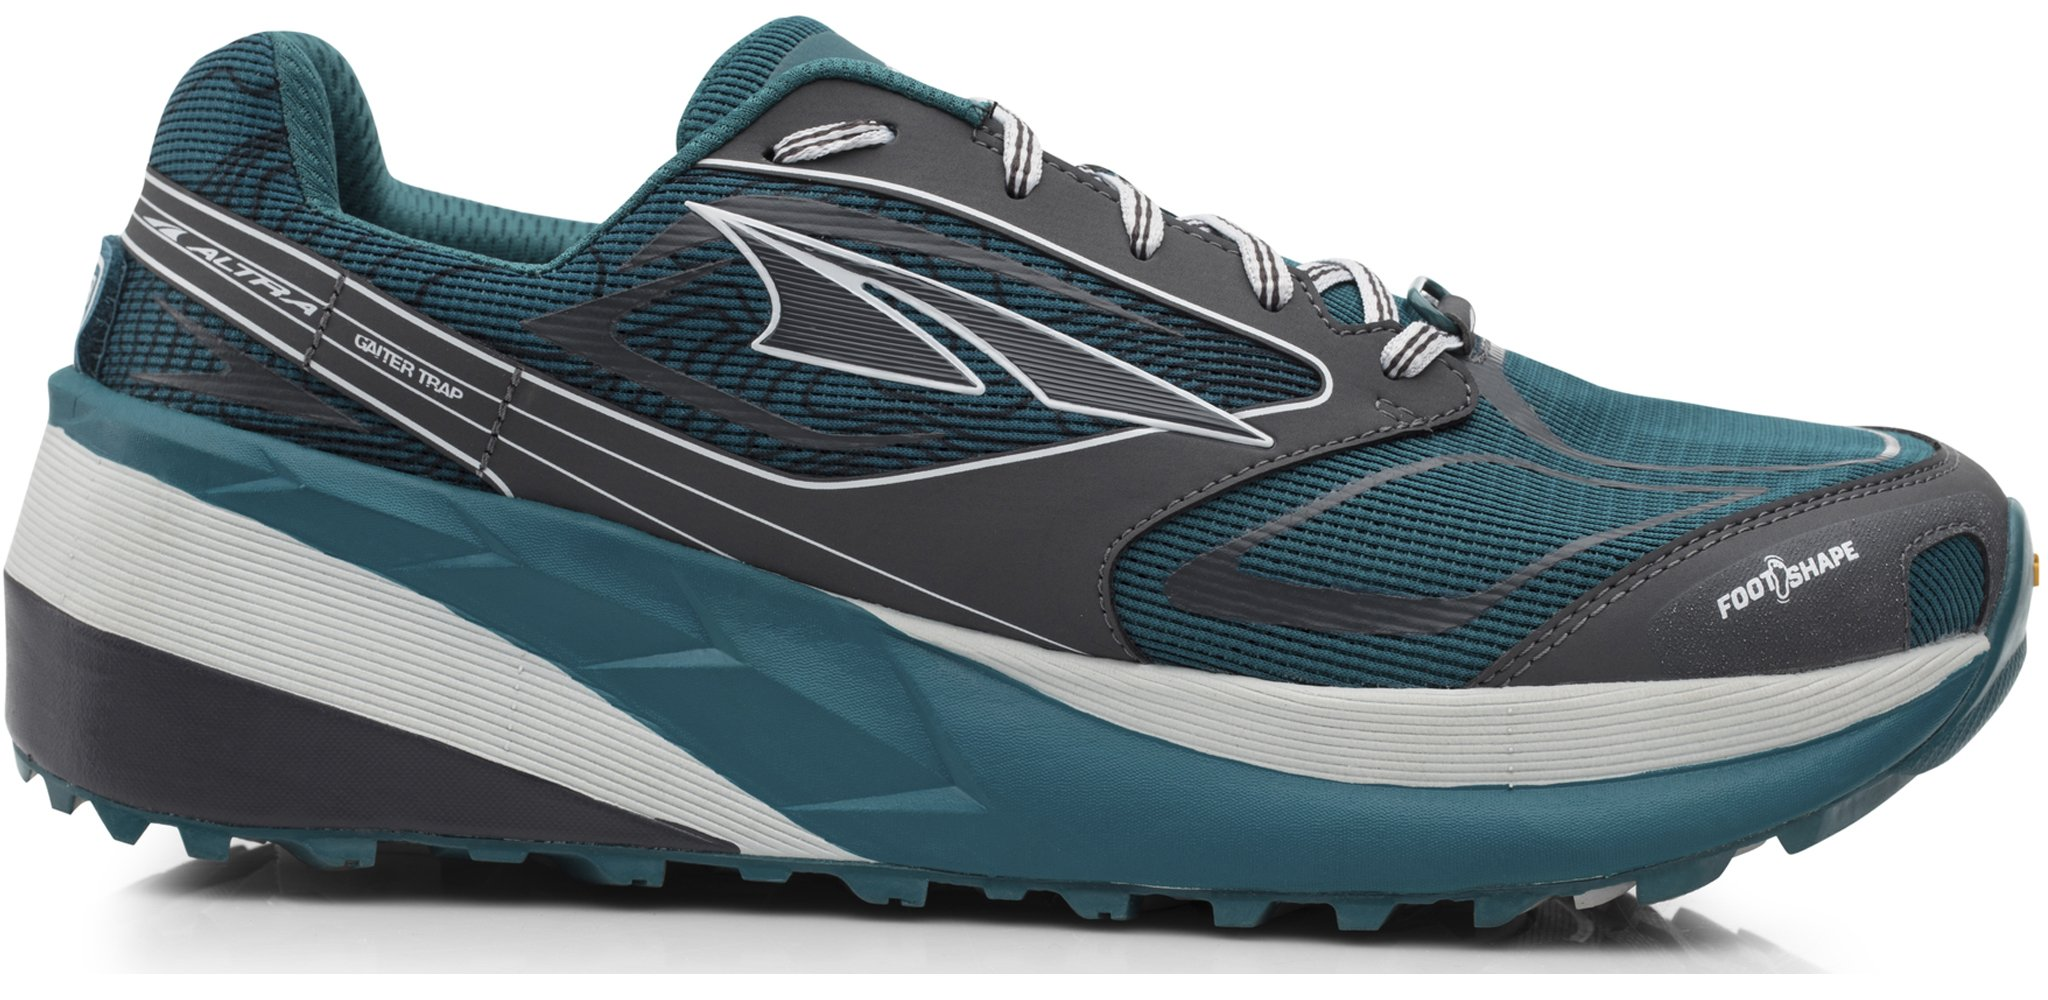 Altra AFM1859F Men's Olympus 3 Running Shoe, Green - 10 D(M) US by Altra (Image #1)